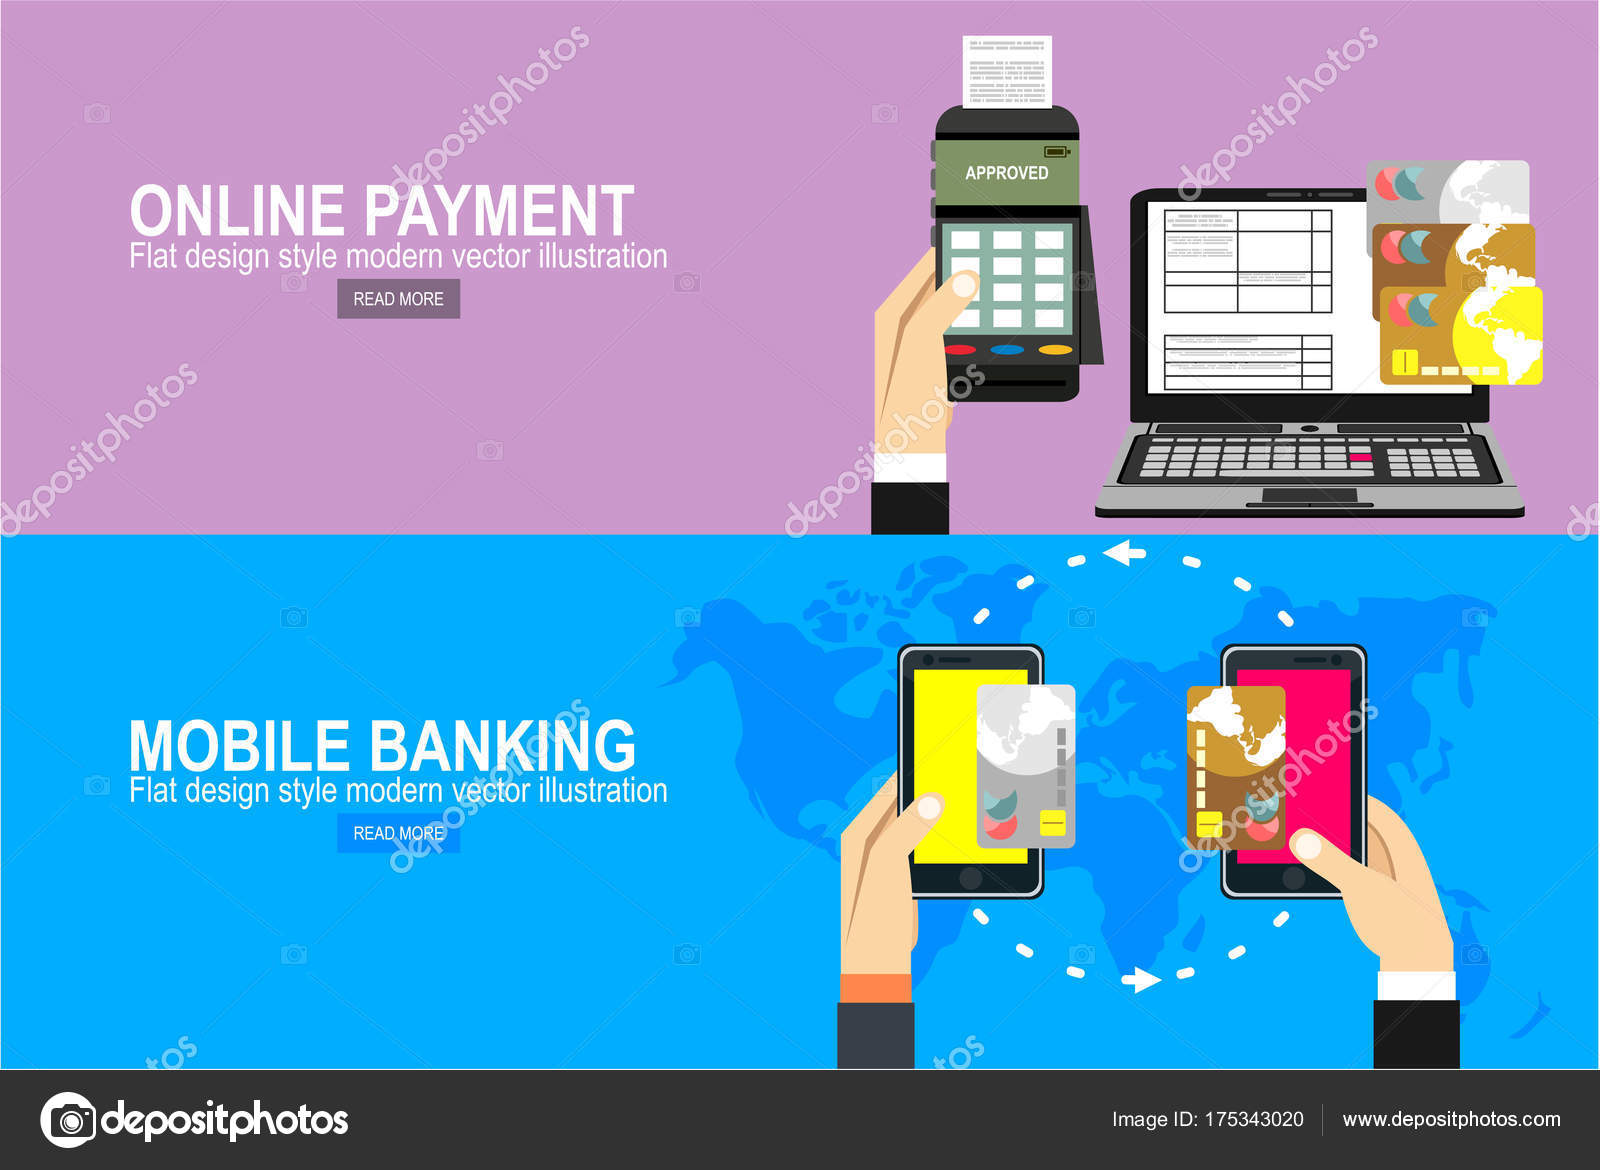 Online Payment Project Management Mobile Payments Credit